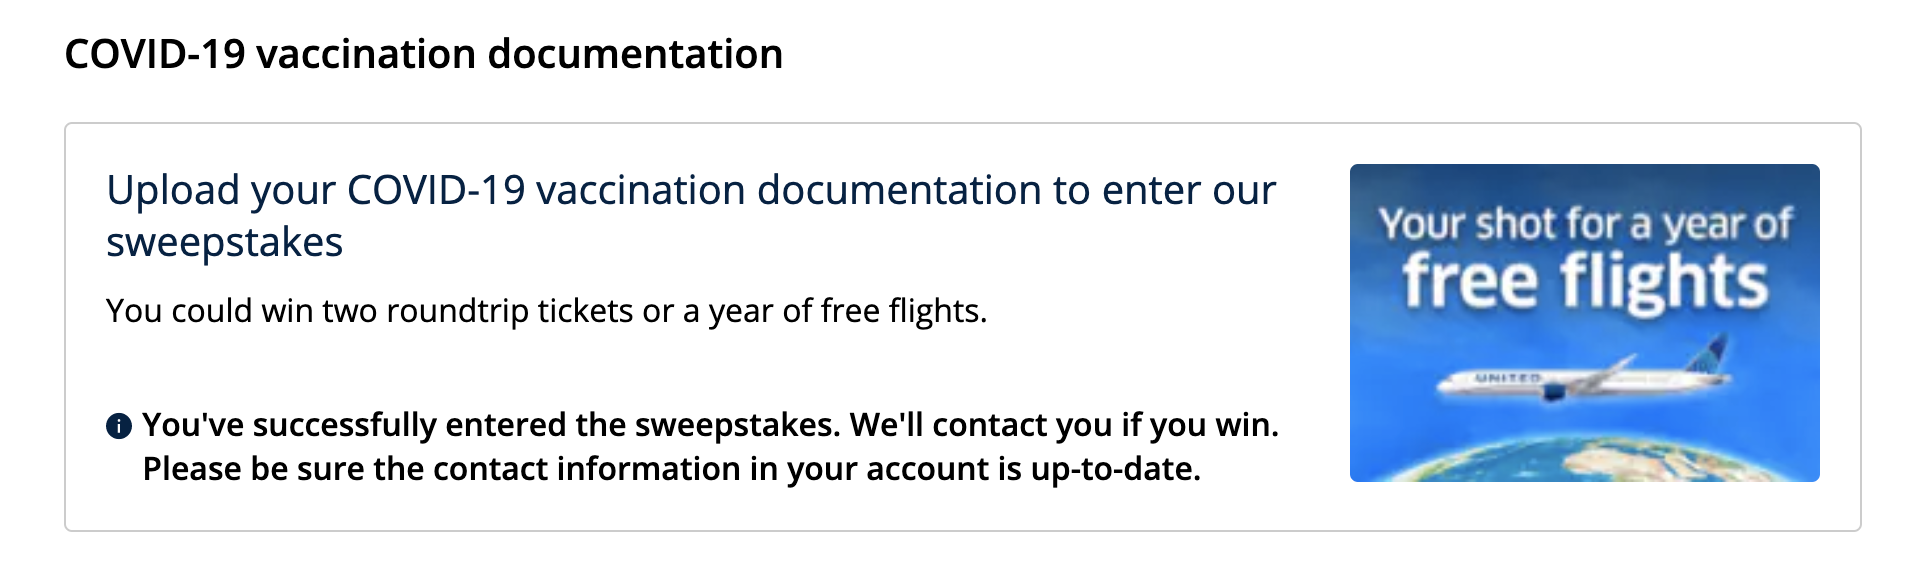 Add COVID-19 vaccine records to MileagePlus account for free United flights